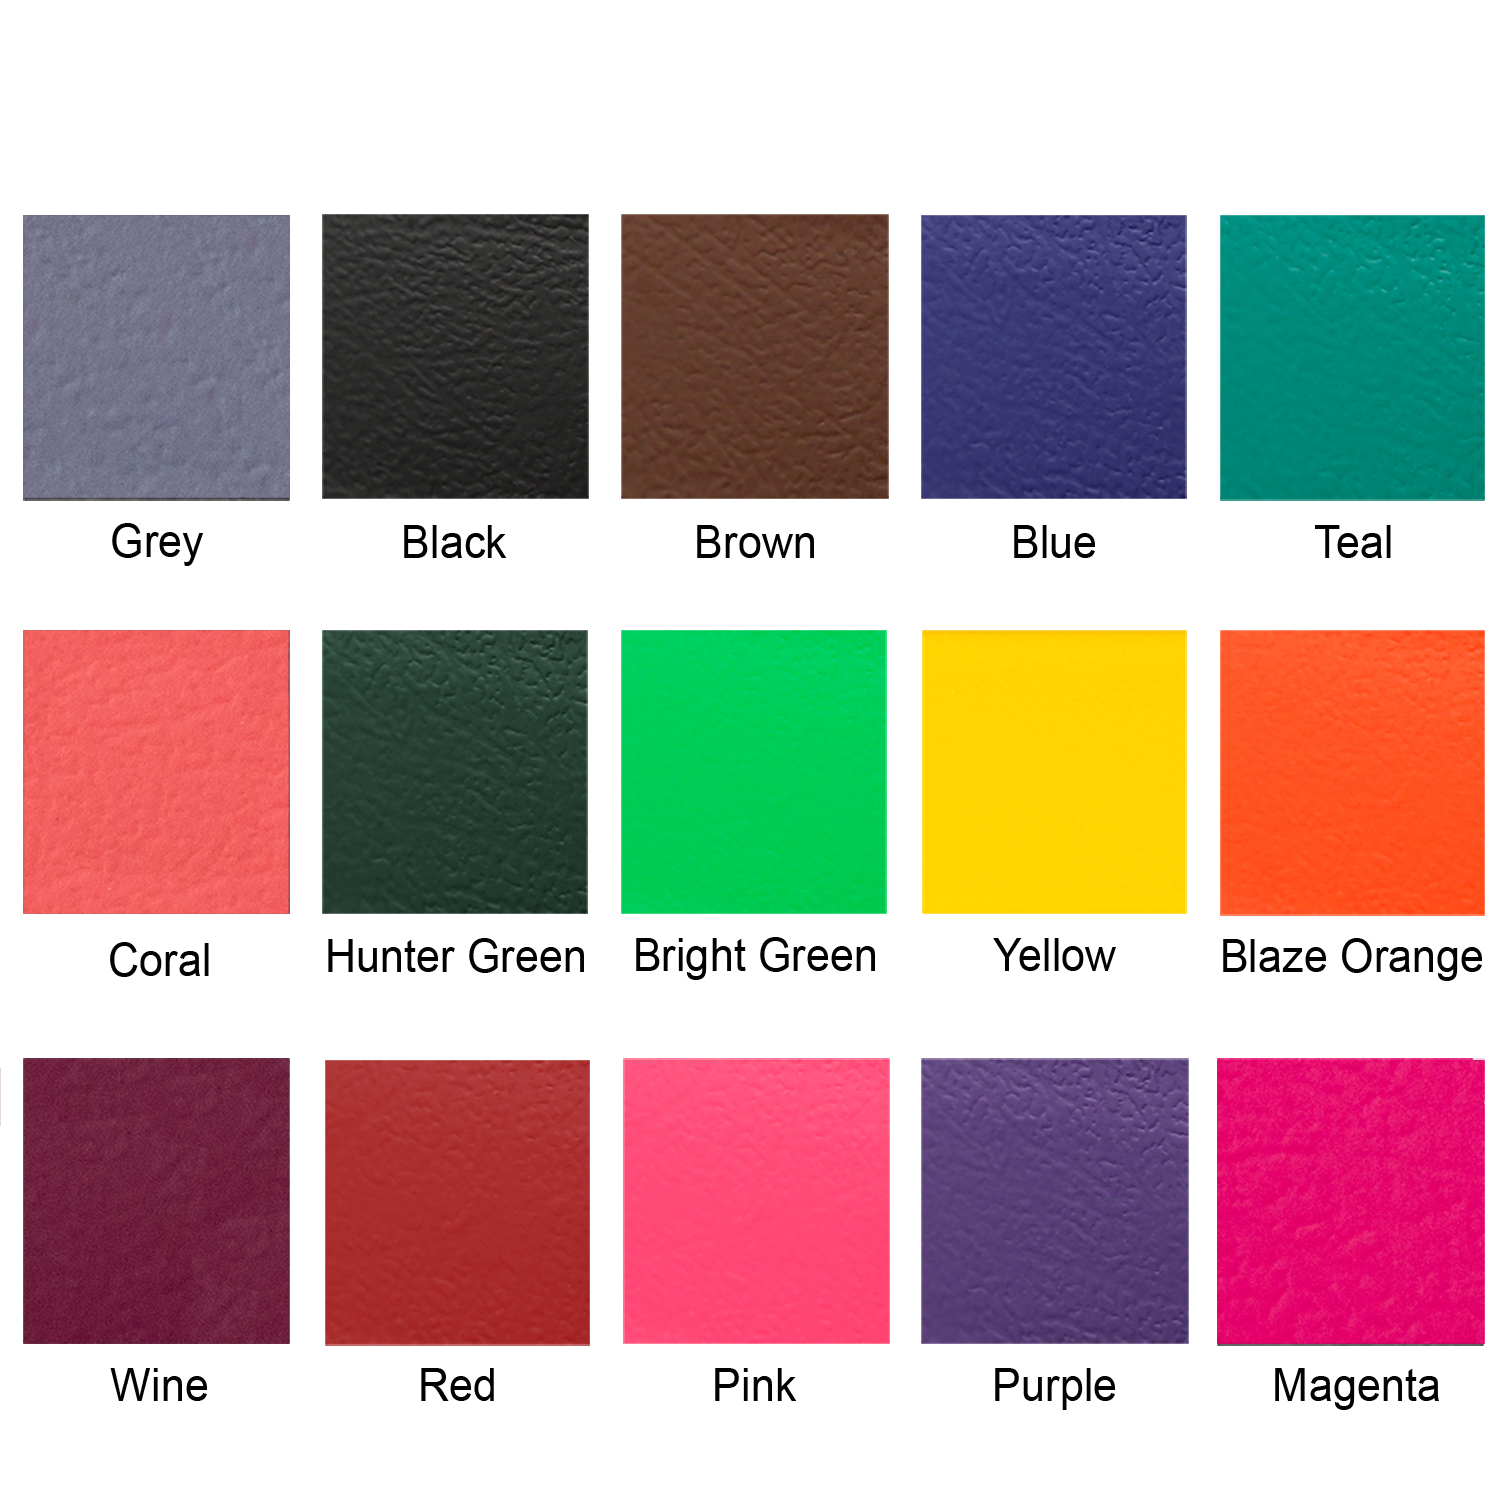 Waterproof color swatches